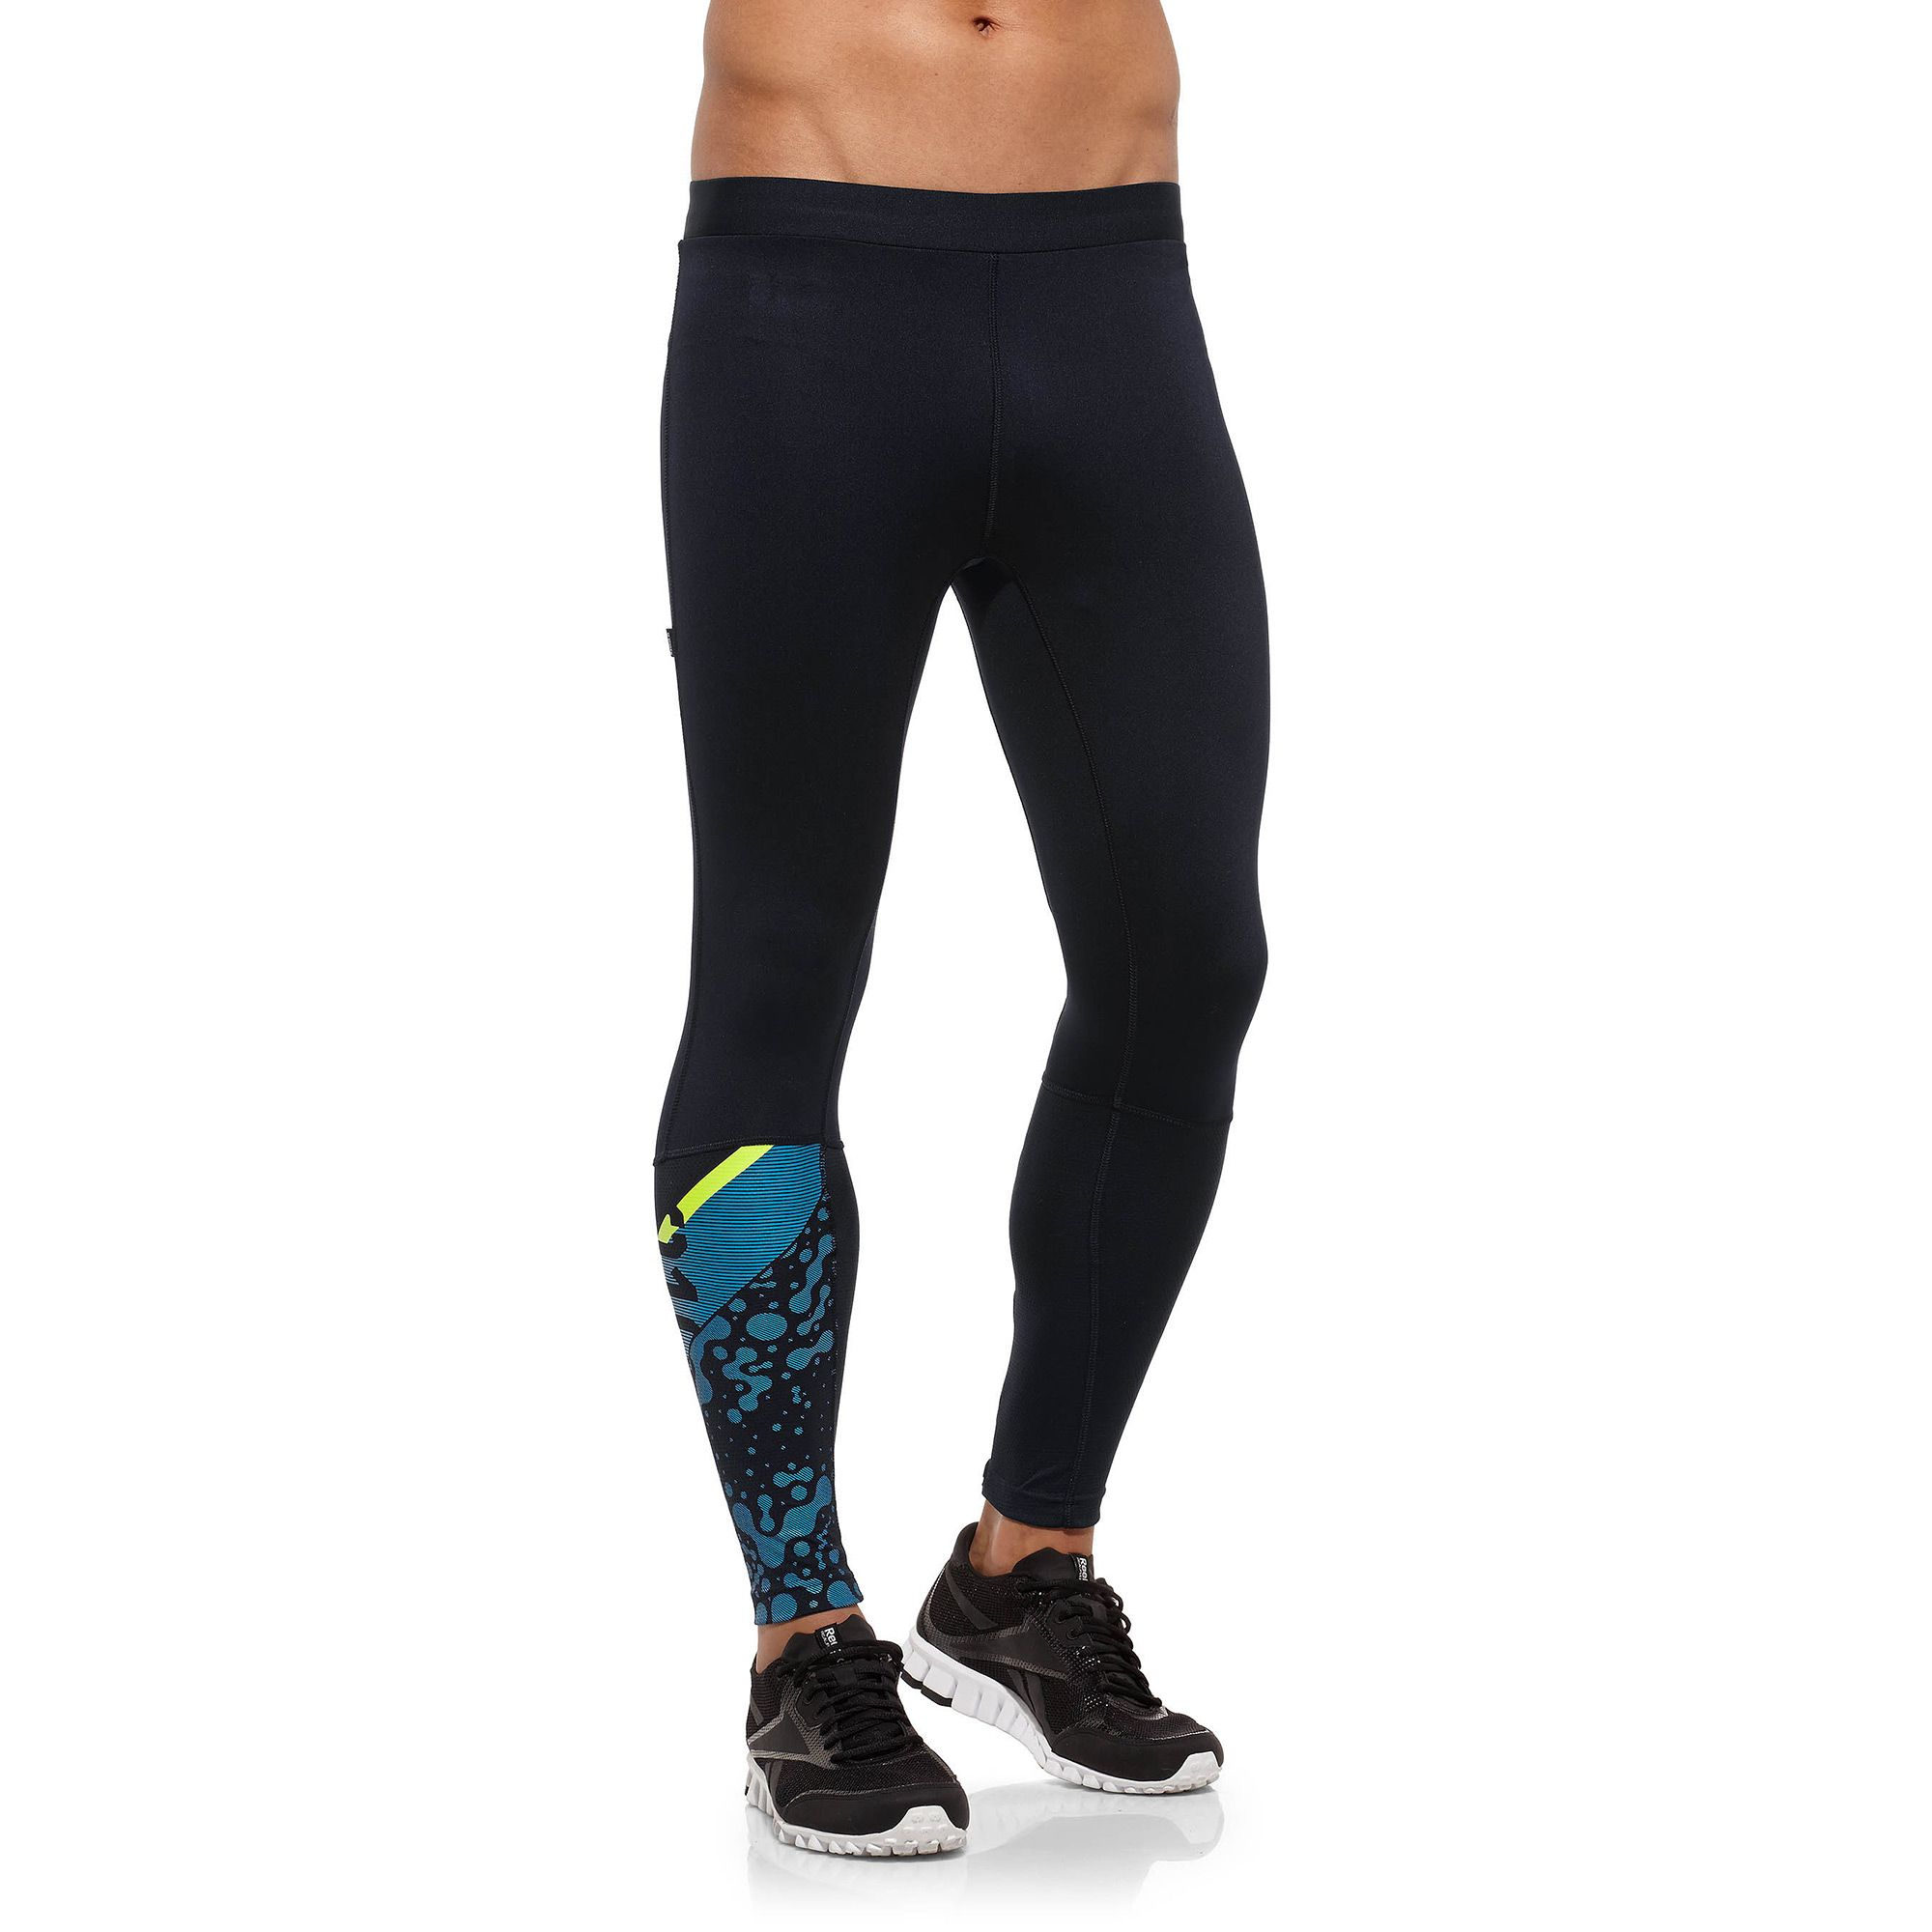 13008d95a57d5 Reebok Men's Reebok ONE Long Tight | Reebok Canada | Gear | Mens ...